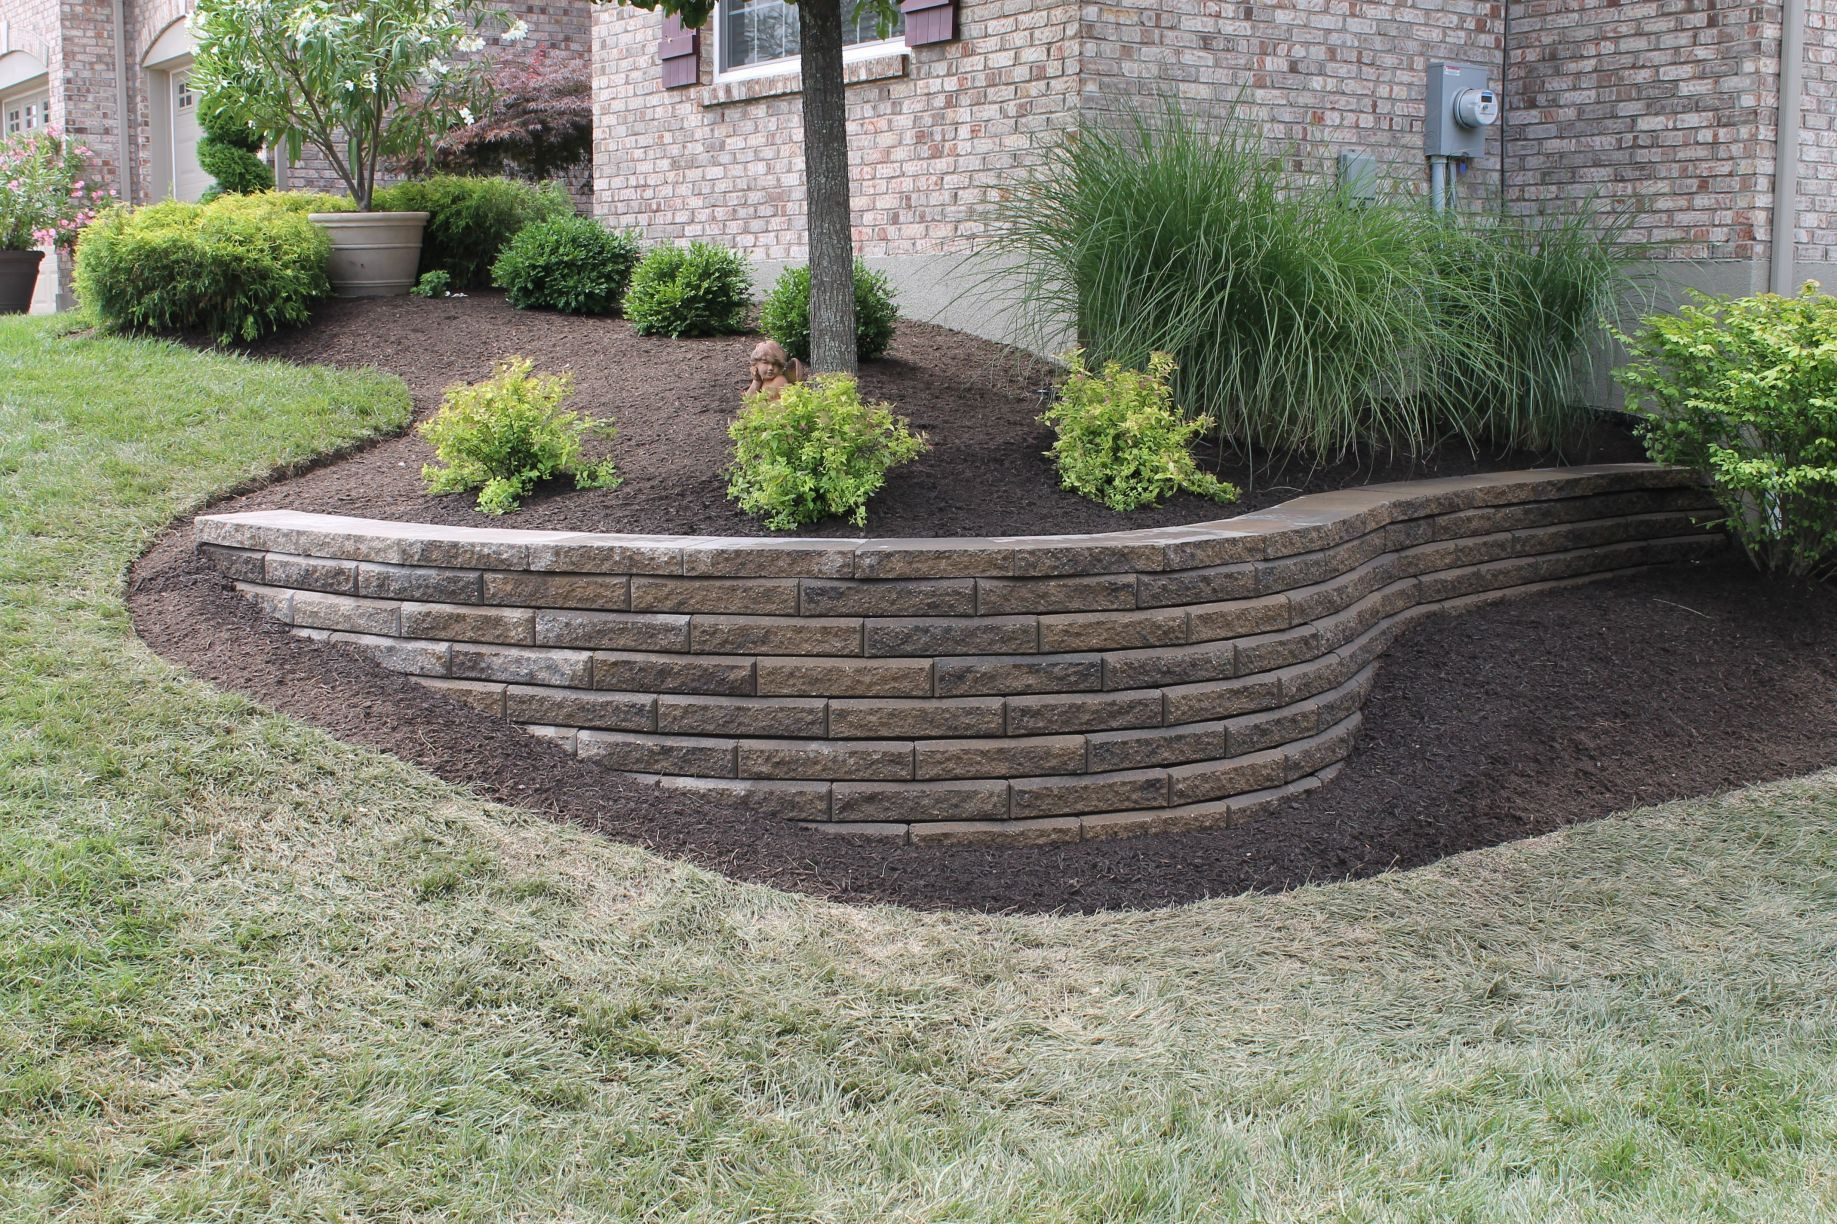 35 Inspiring Retaining Wall Ideas Uses that Will Blow Your ...